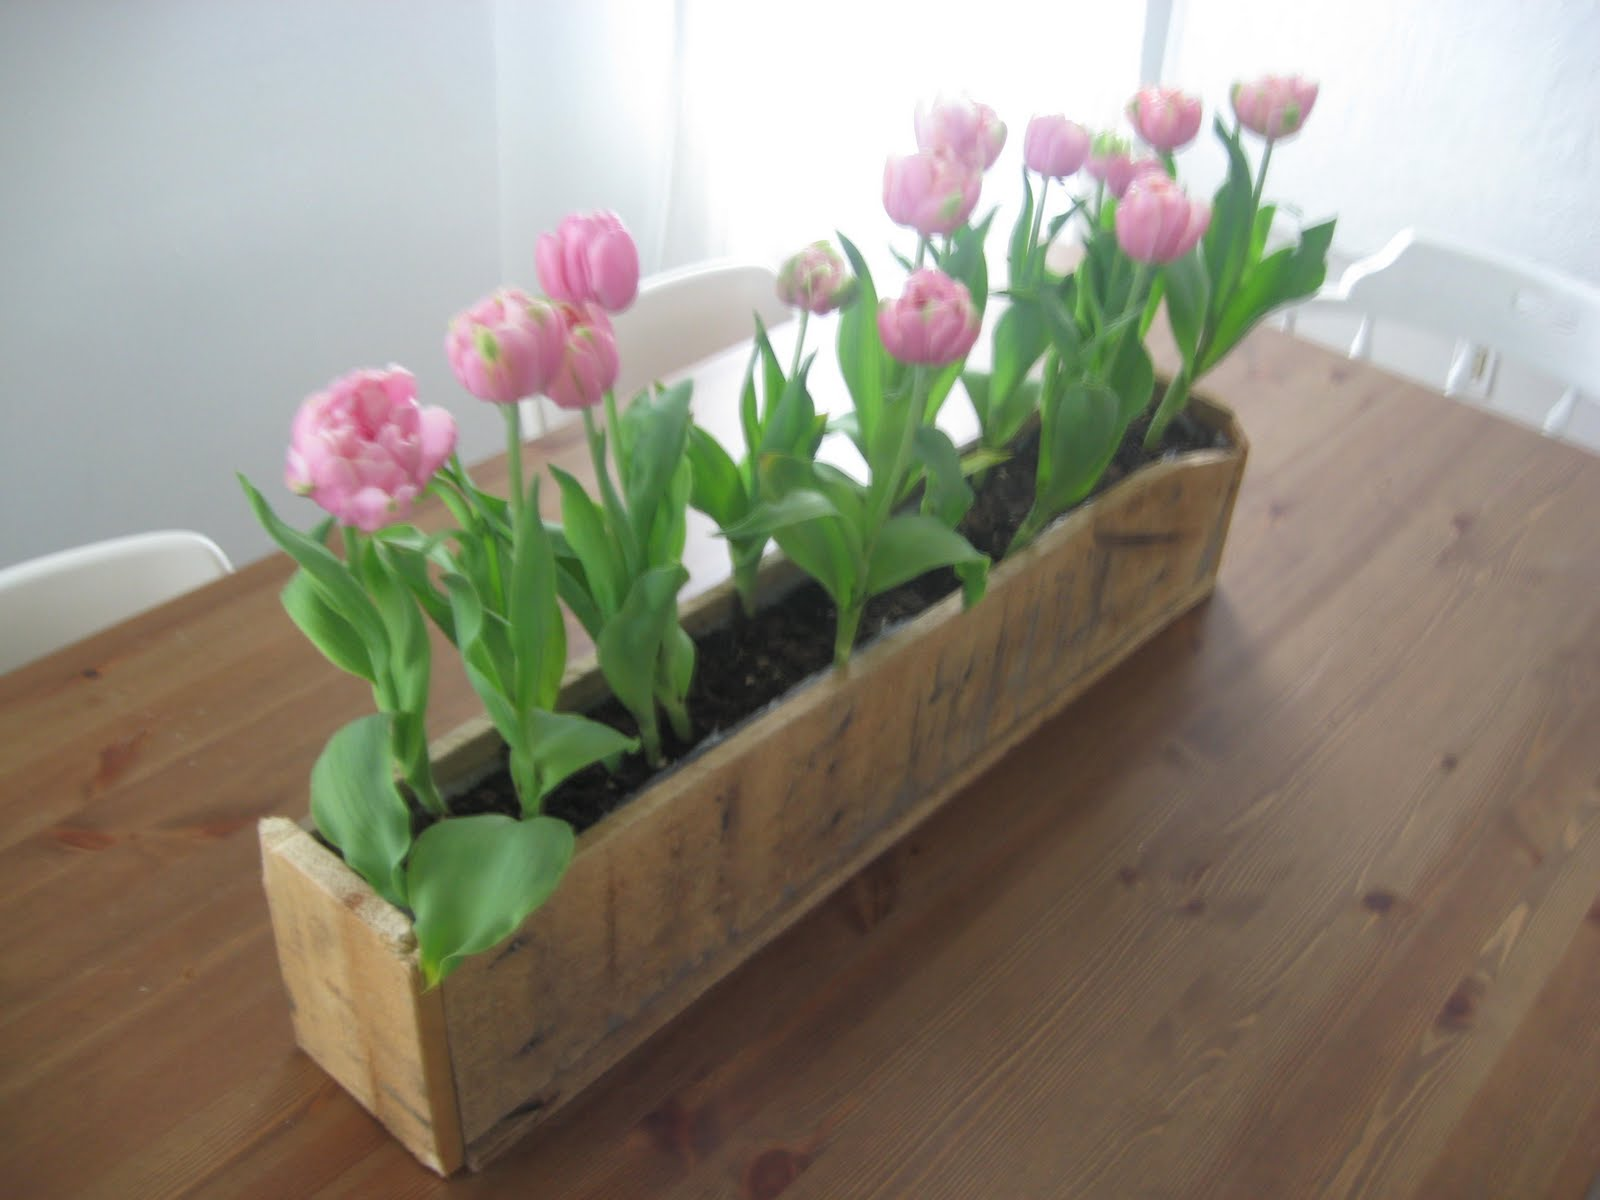 Diy Planter Box From Pallets How To Make A Wood Pallet Planter 42 Diy Ideas